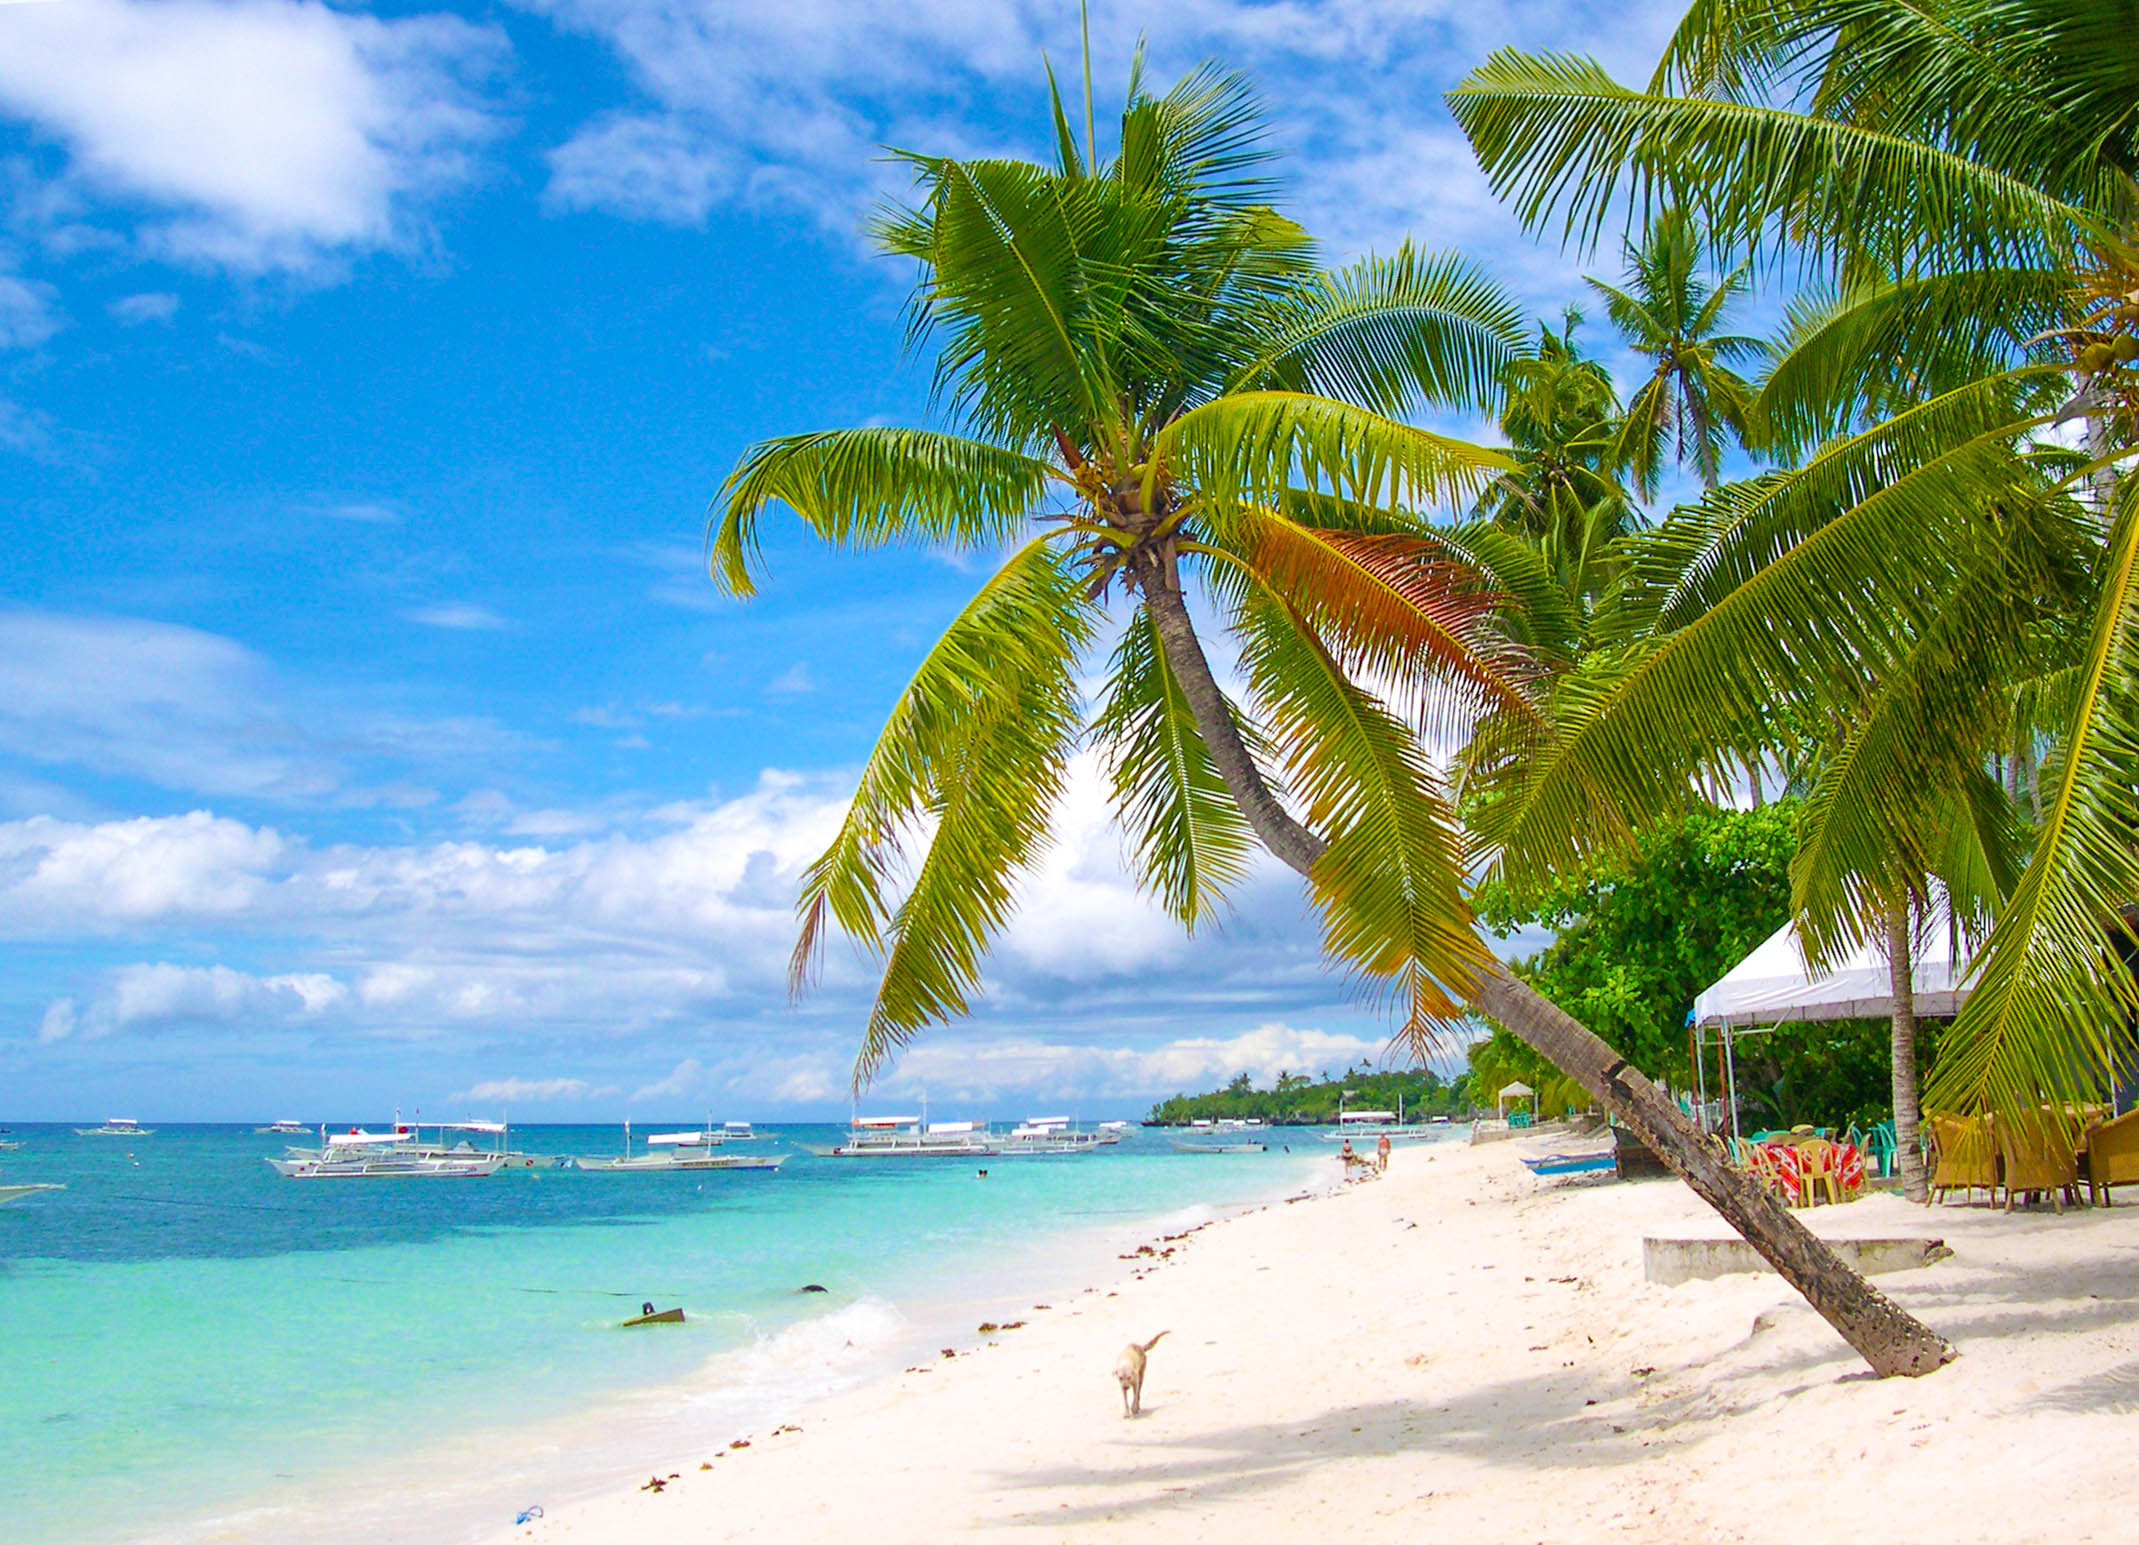 Coconut palm trees leaning over a white sand beach fronting blue and turquoise waters with numerous boats in anchor in Panglao, one of the most amazing places to visit in the Philippines